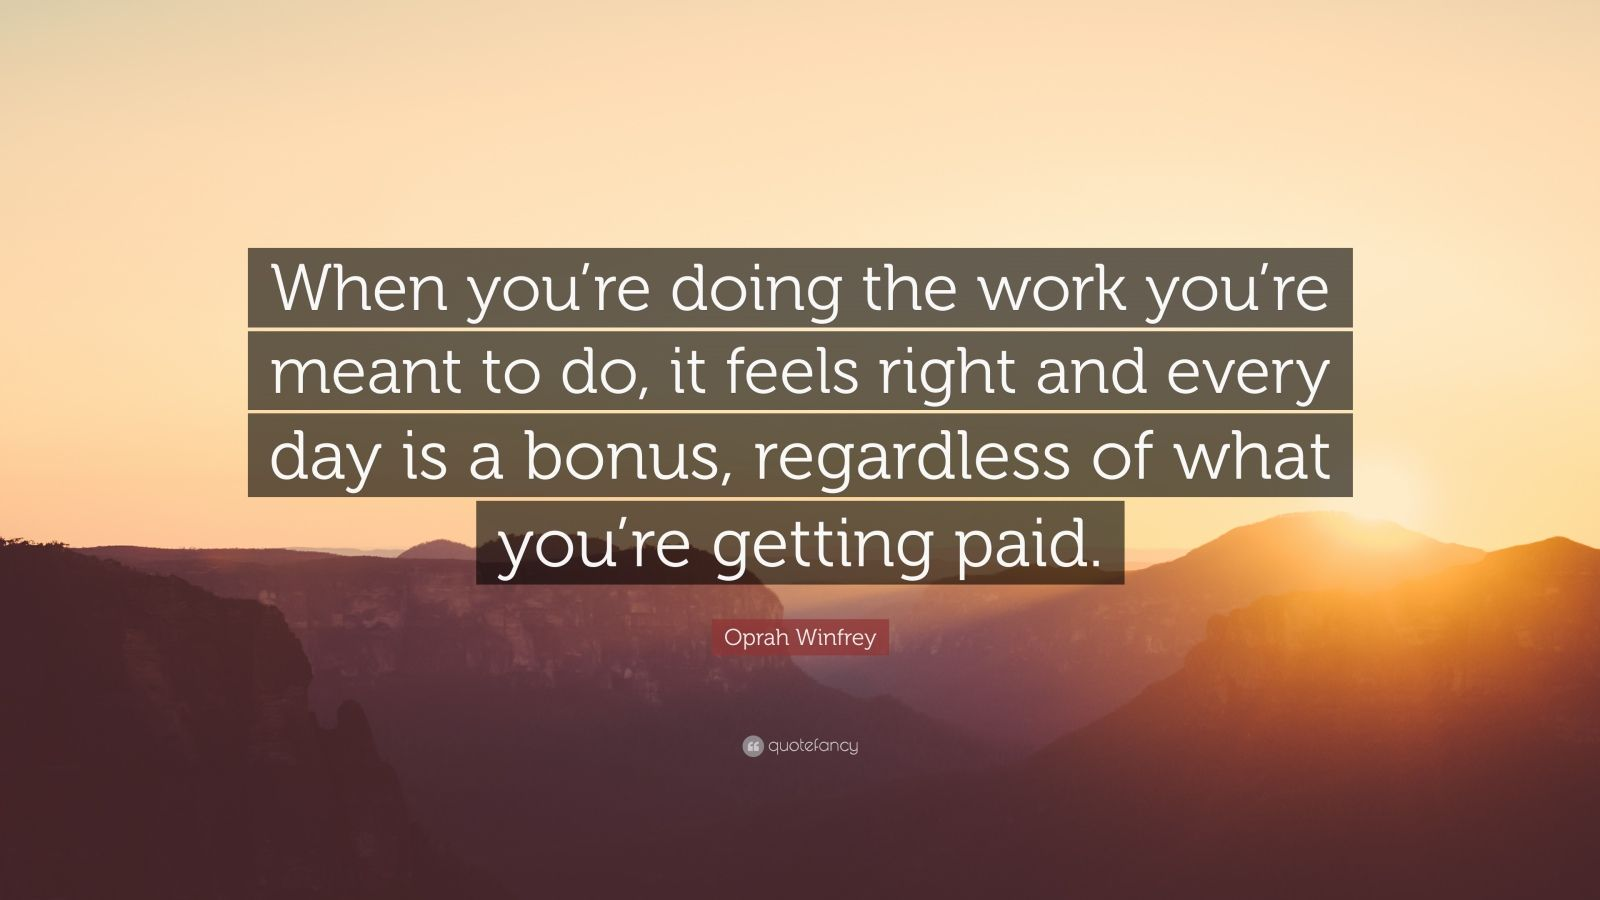 """Oprah Winfrey Quote: """"When you're doing the work you're meant to do, it feels right and every day is a bonus, regardless of what you're getting paid."""""""